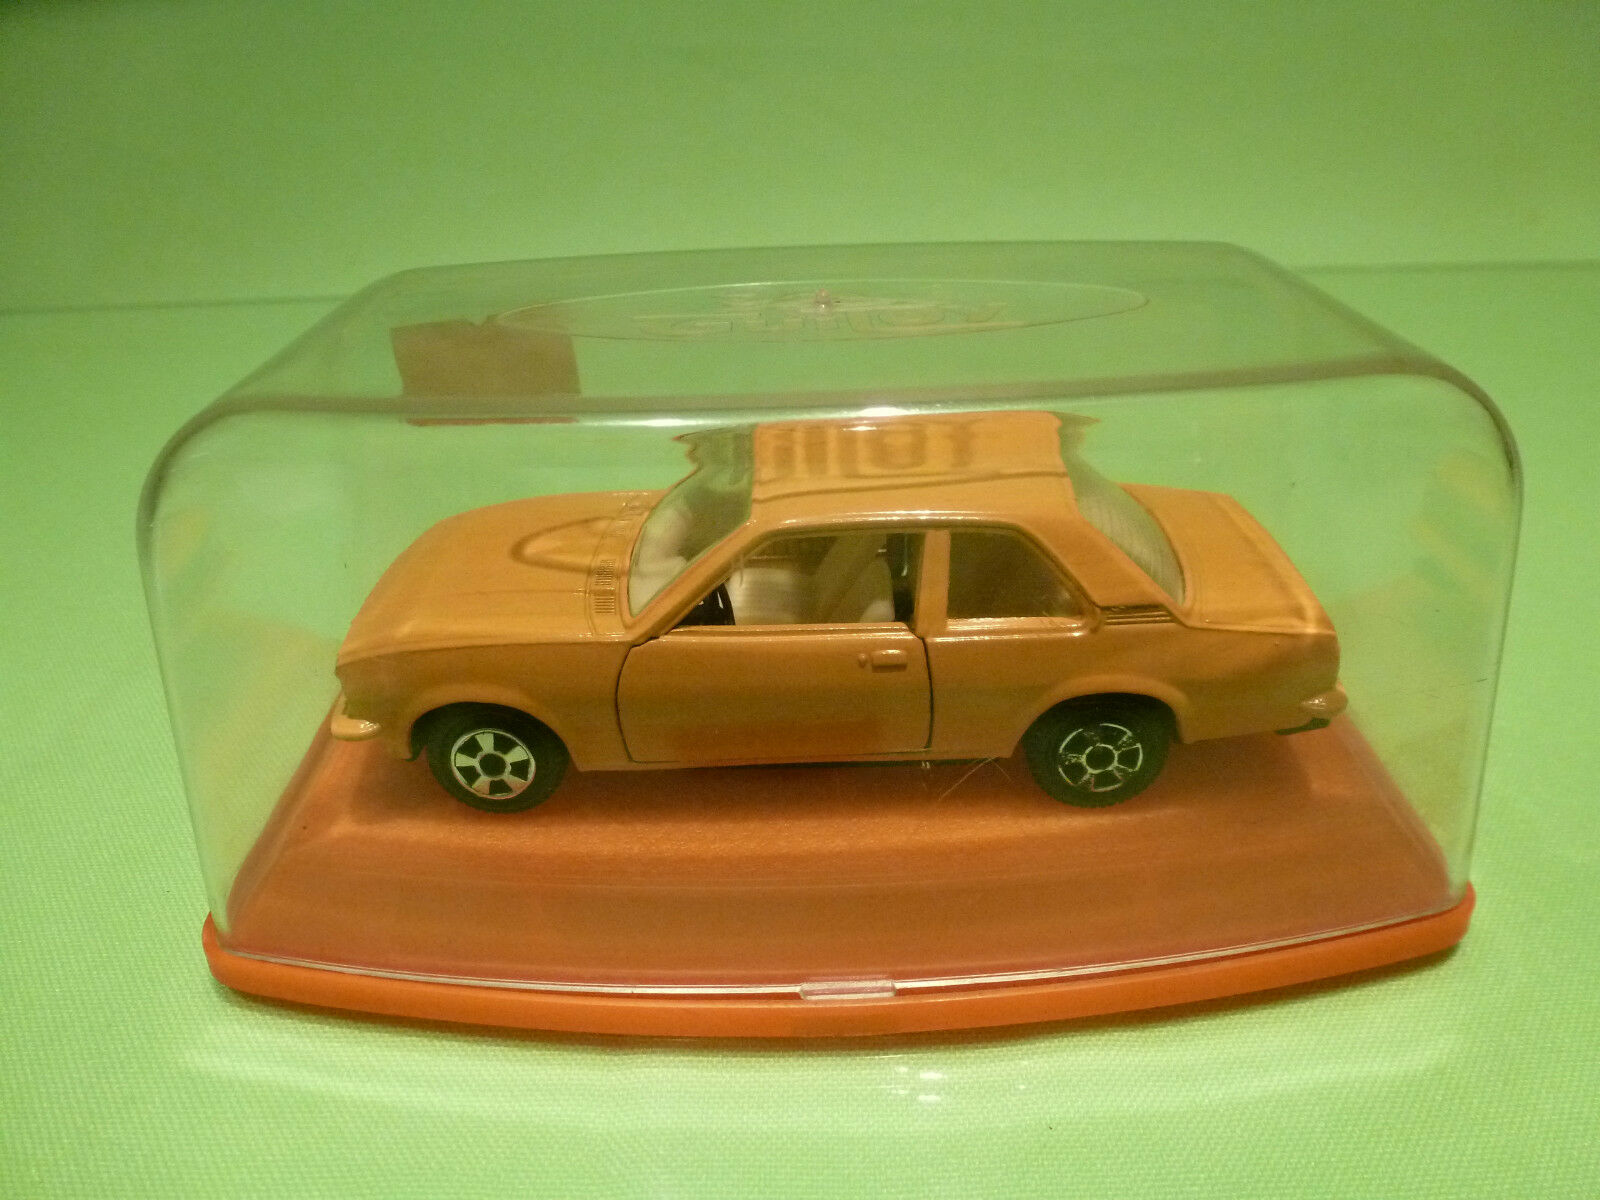 GUILOY OPEL ASCONA - YELLOW 1 43 - VERY GOOD CONDITION IN BOX